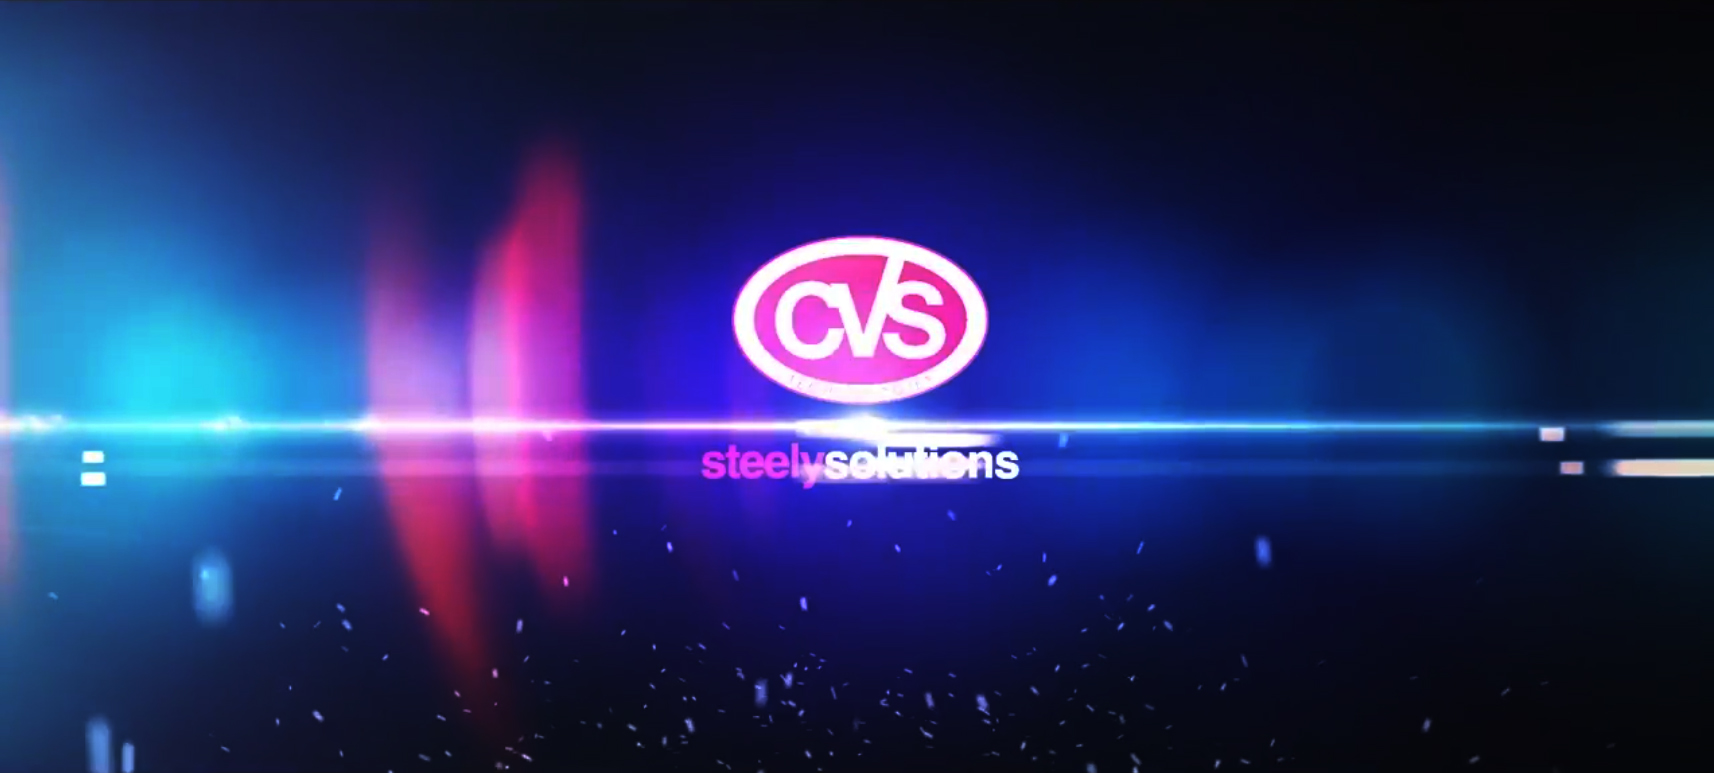 CVS-Steel-3D-Animation-Animation